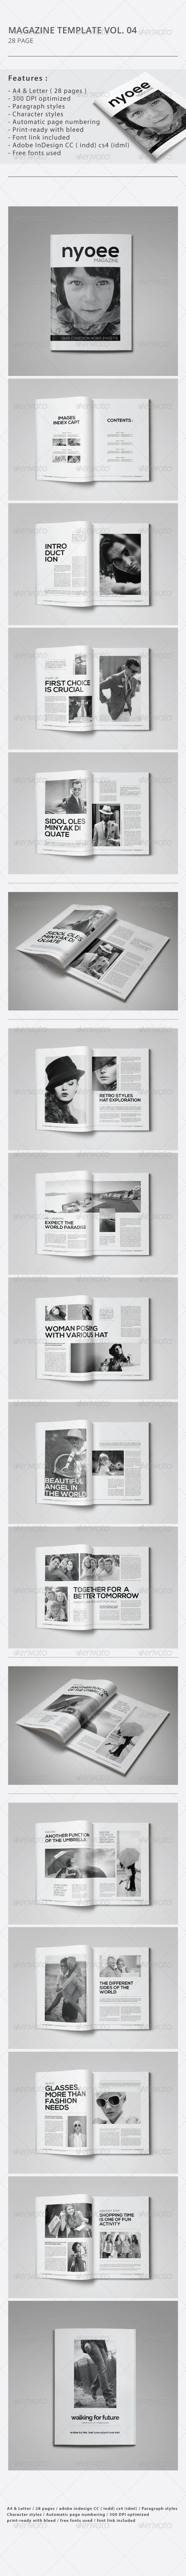 GraphicRiver Indesign Magazine Template Vol.04 8687967